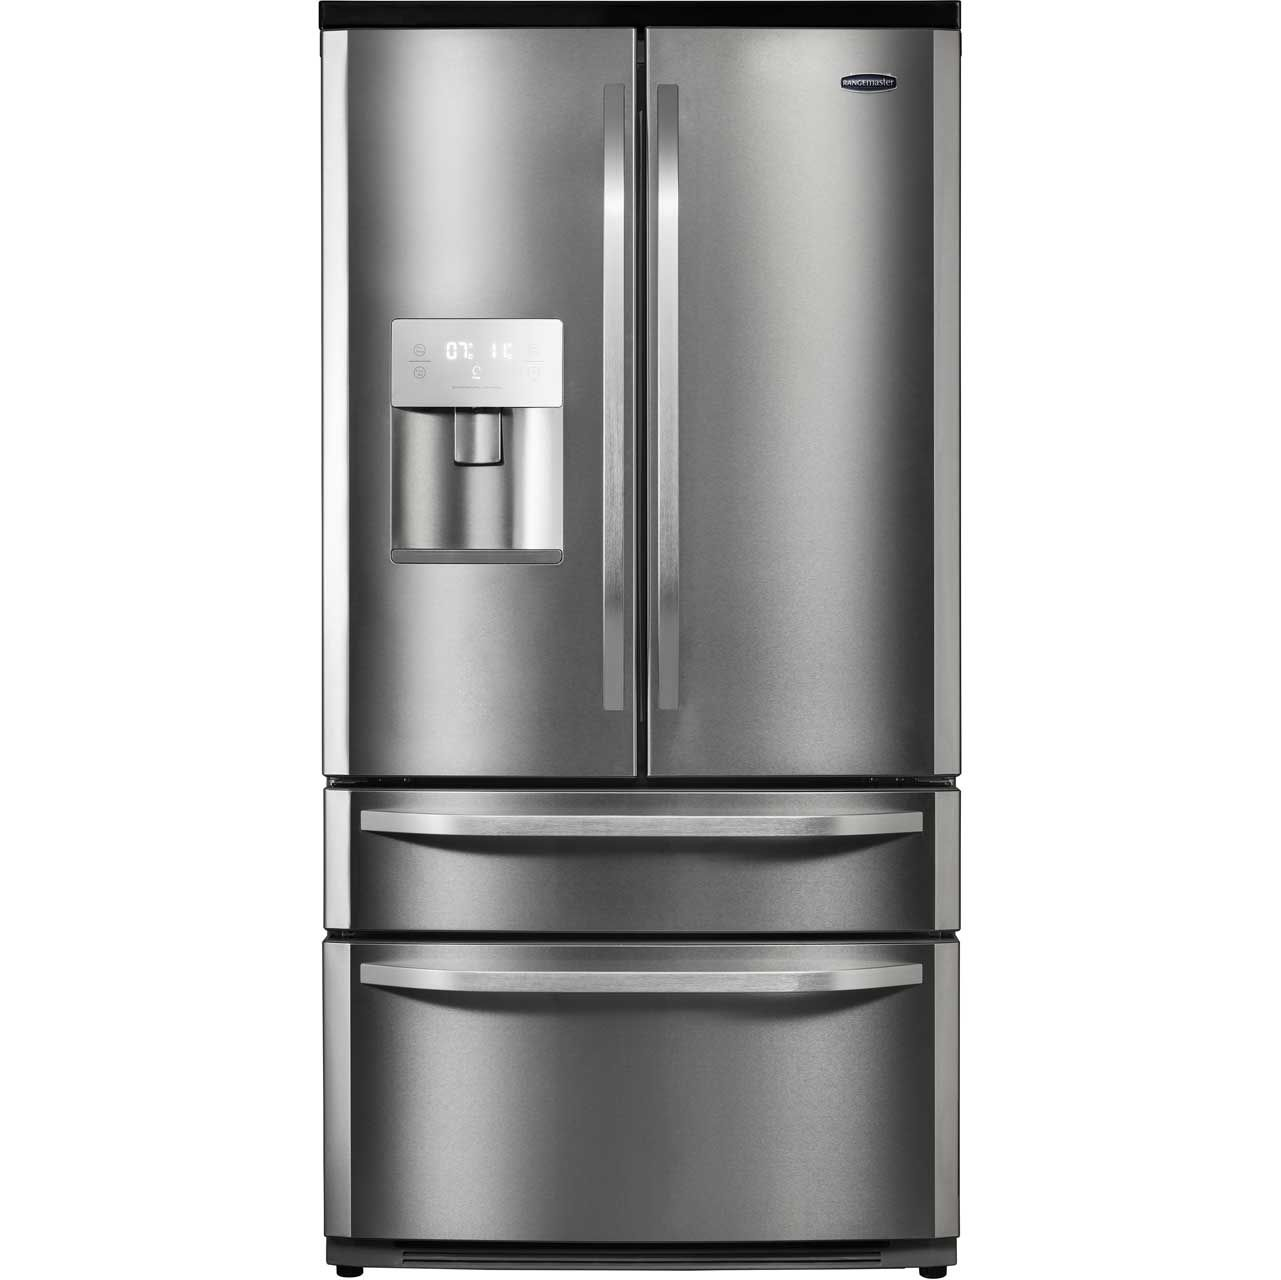 Rangemaster DXD RDXD15SS/C American Fridge Freezer   Stainless Steel /  Chrome